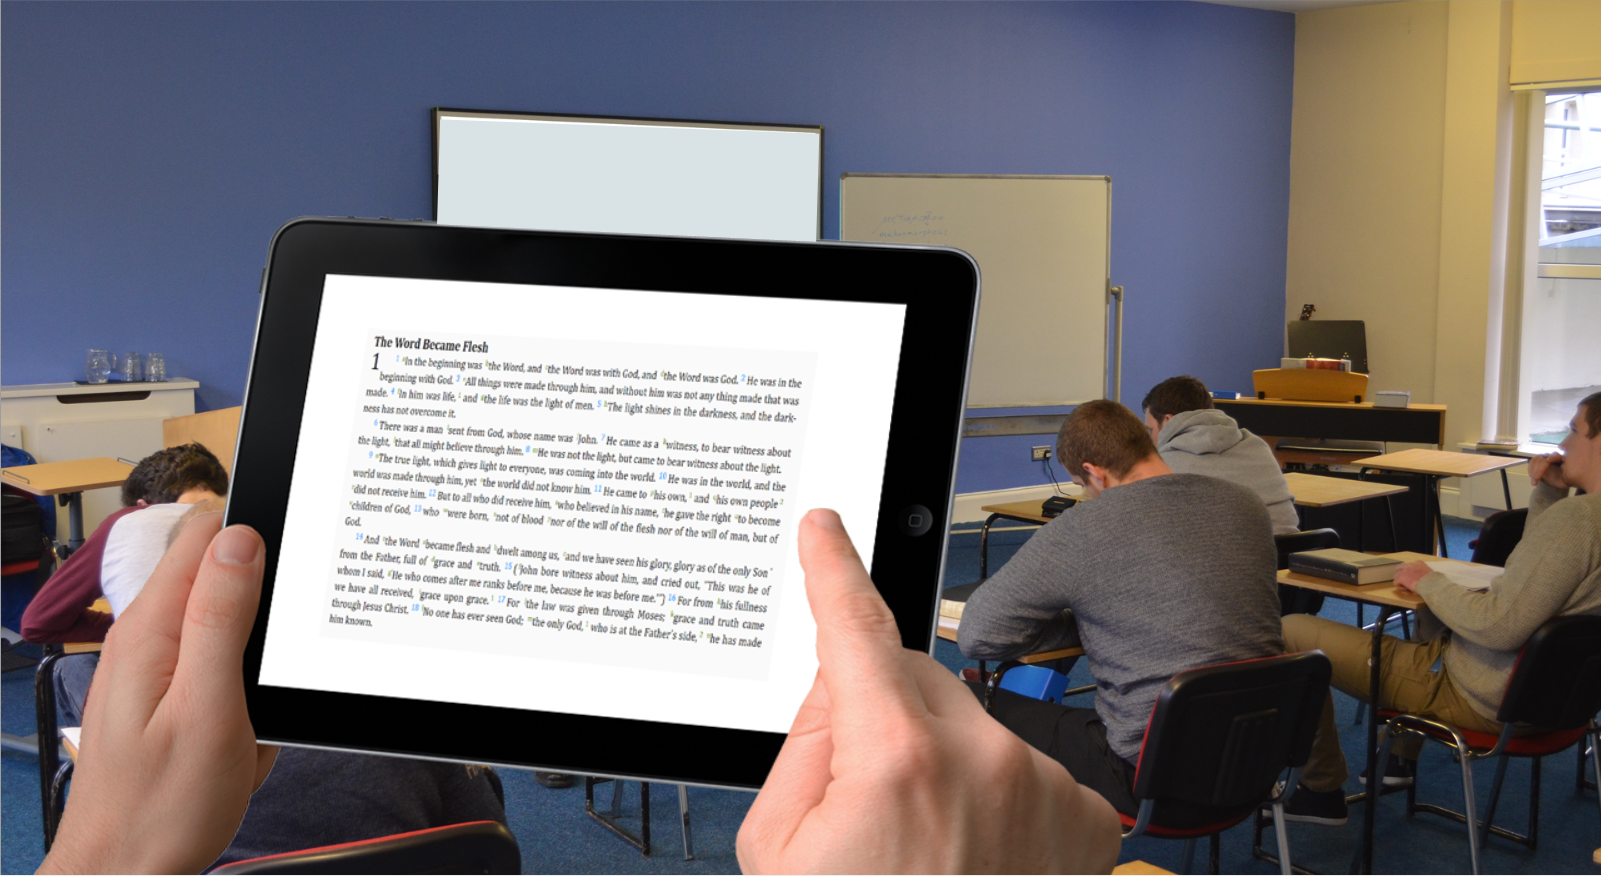 lecture room with tablet with text of John 1